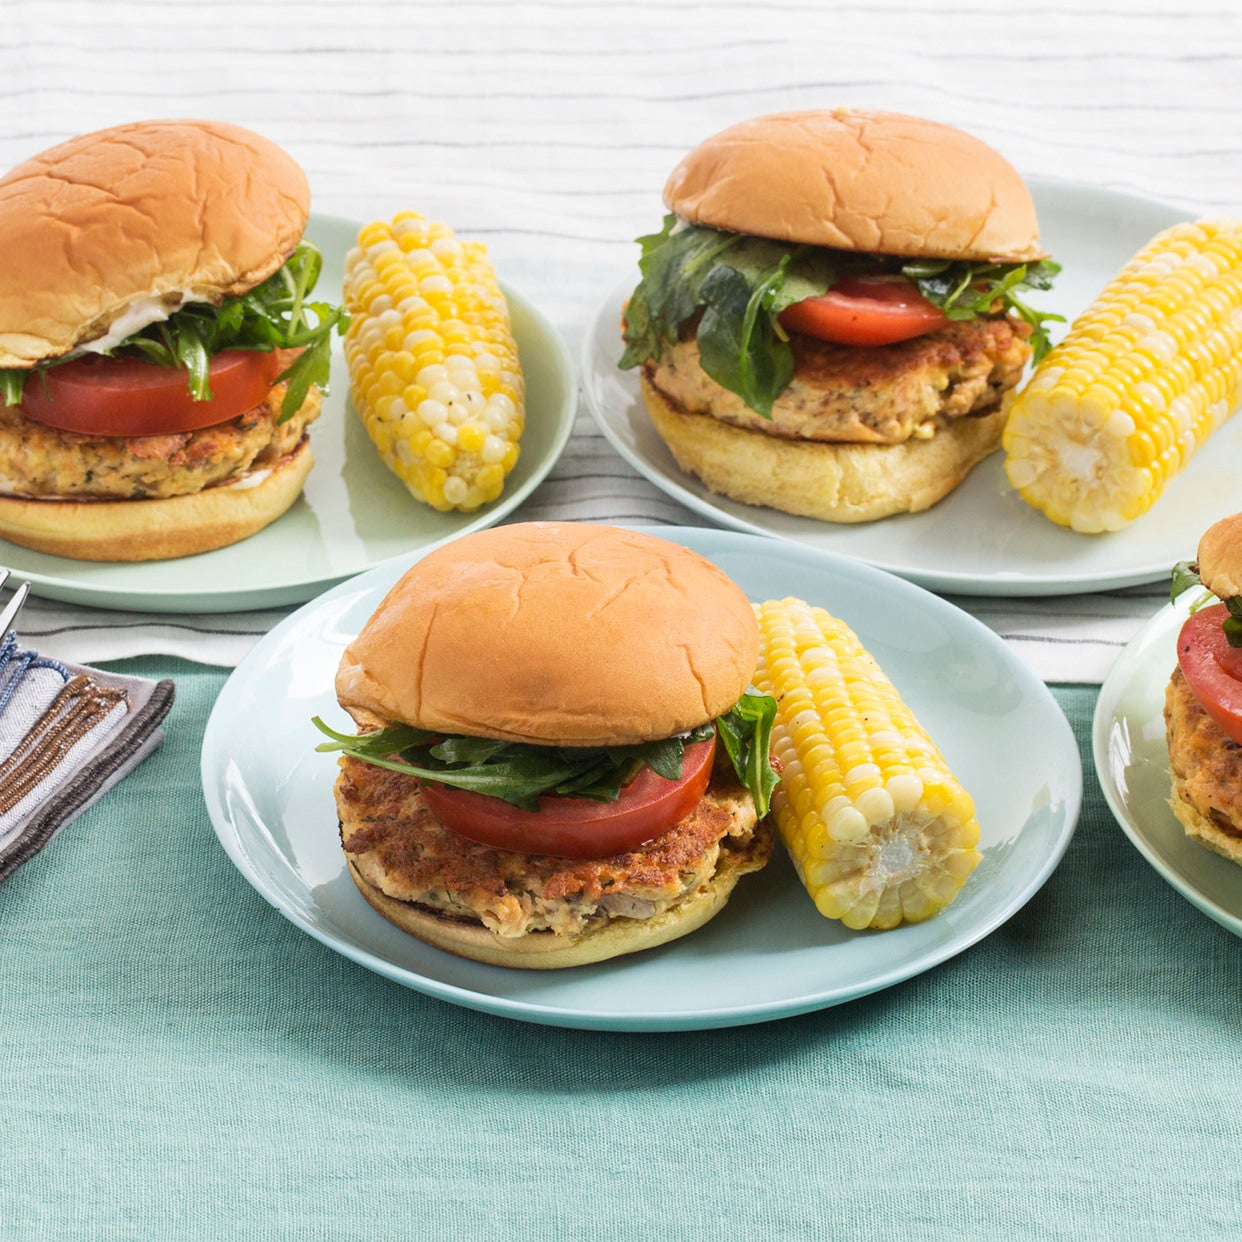 Lemon-Dill Salmon Burgers with Buttered Corn on the Cob